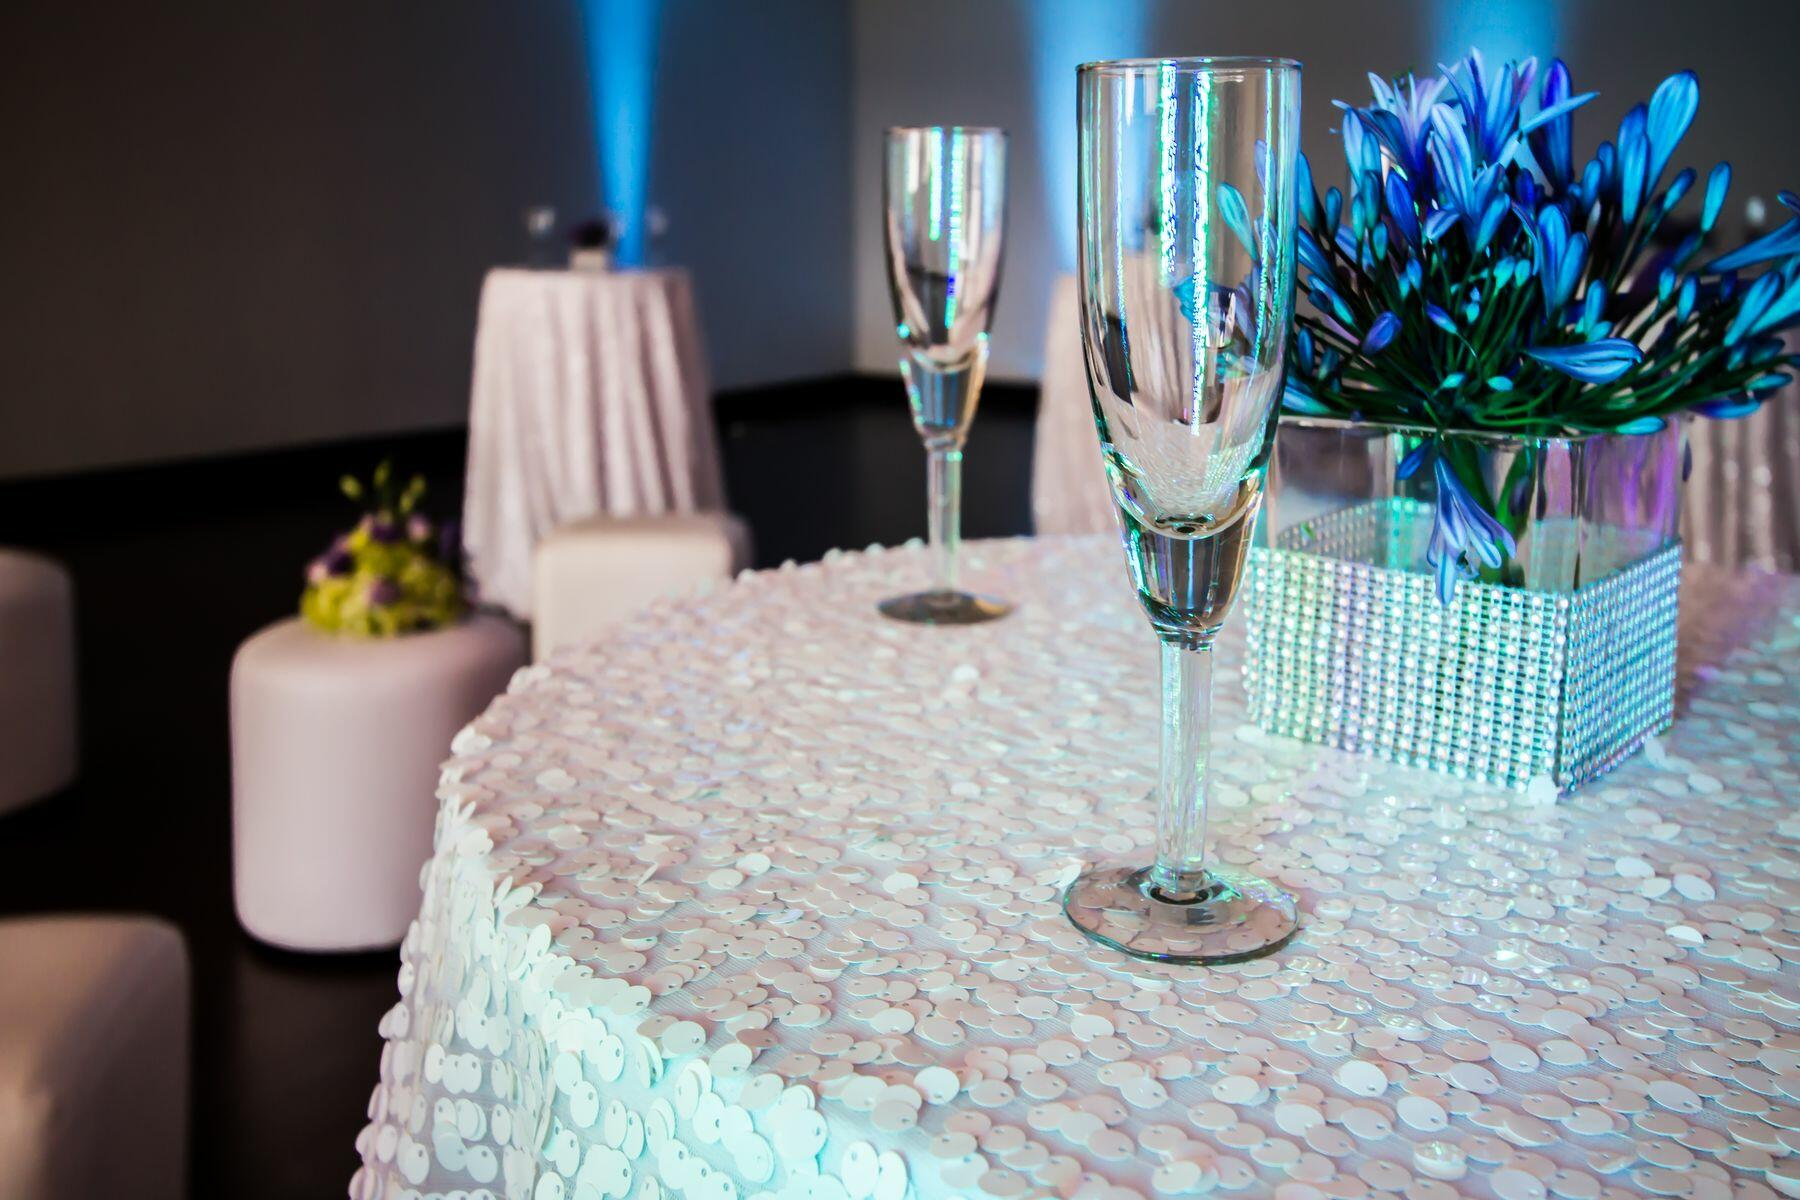 Circular table with champagne flute